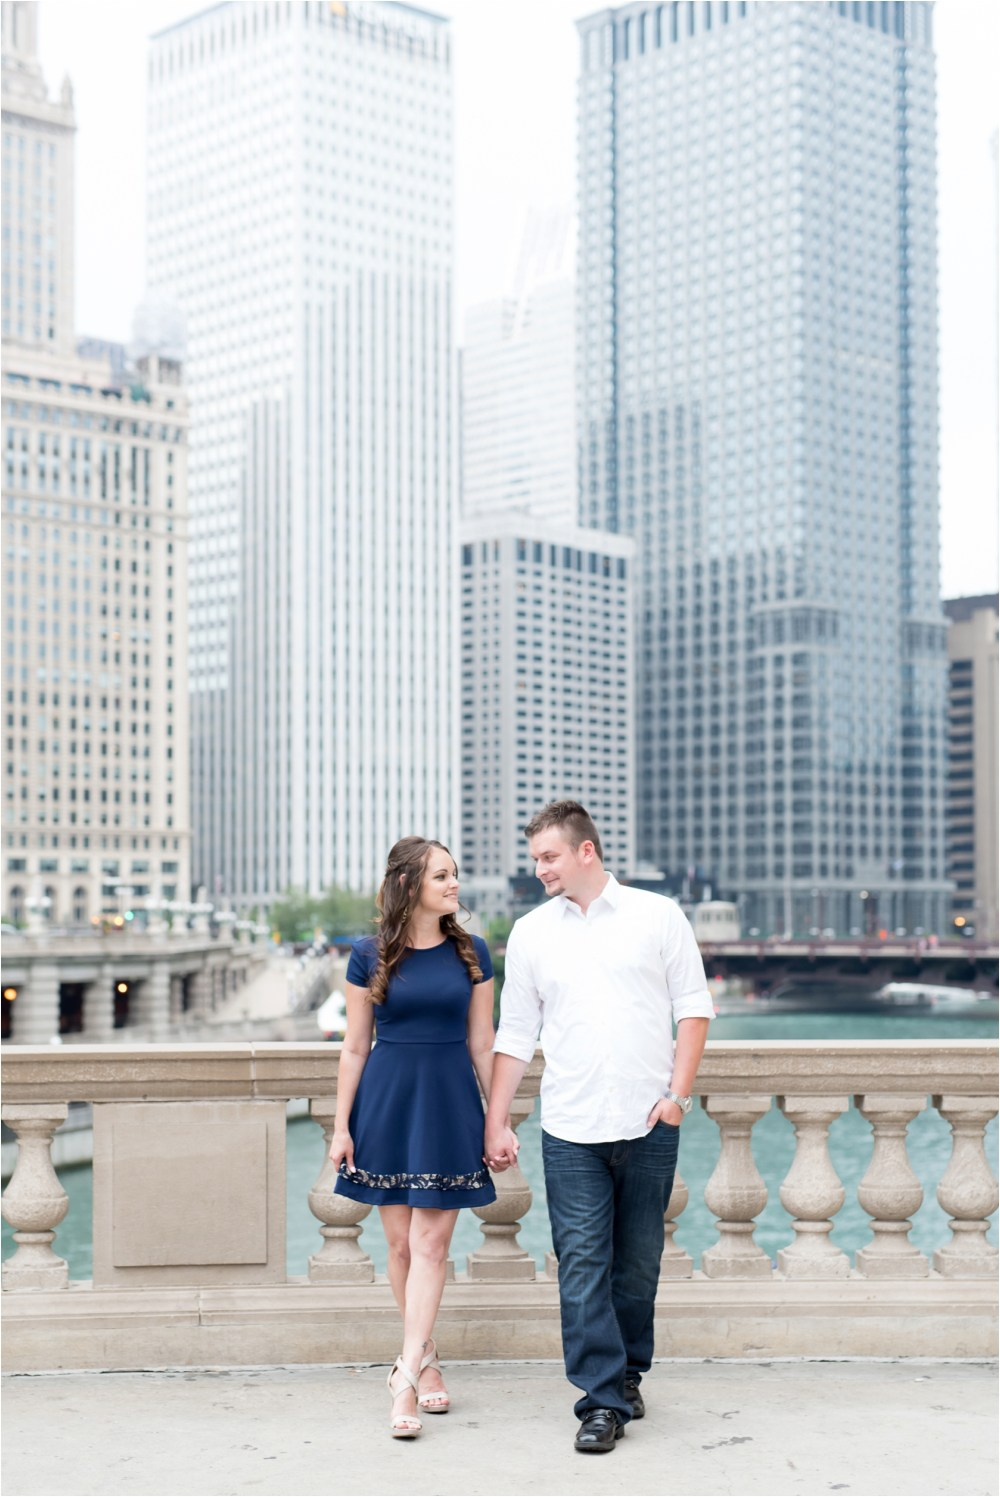 chicago-ilinois-michigna-ave-city-downtown-engagement-photo-10.jpg